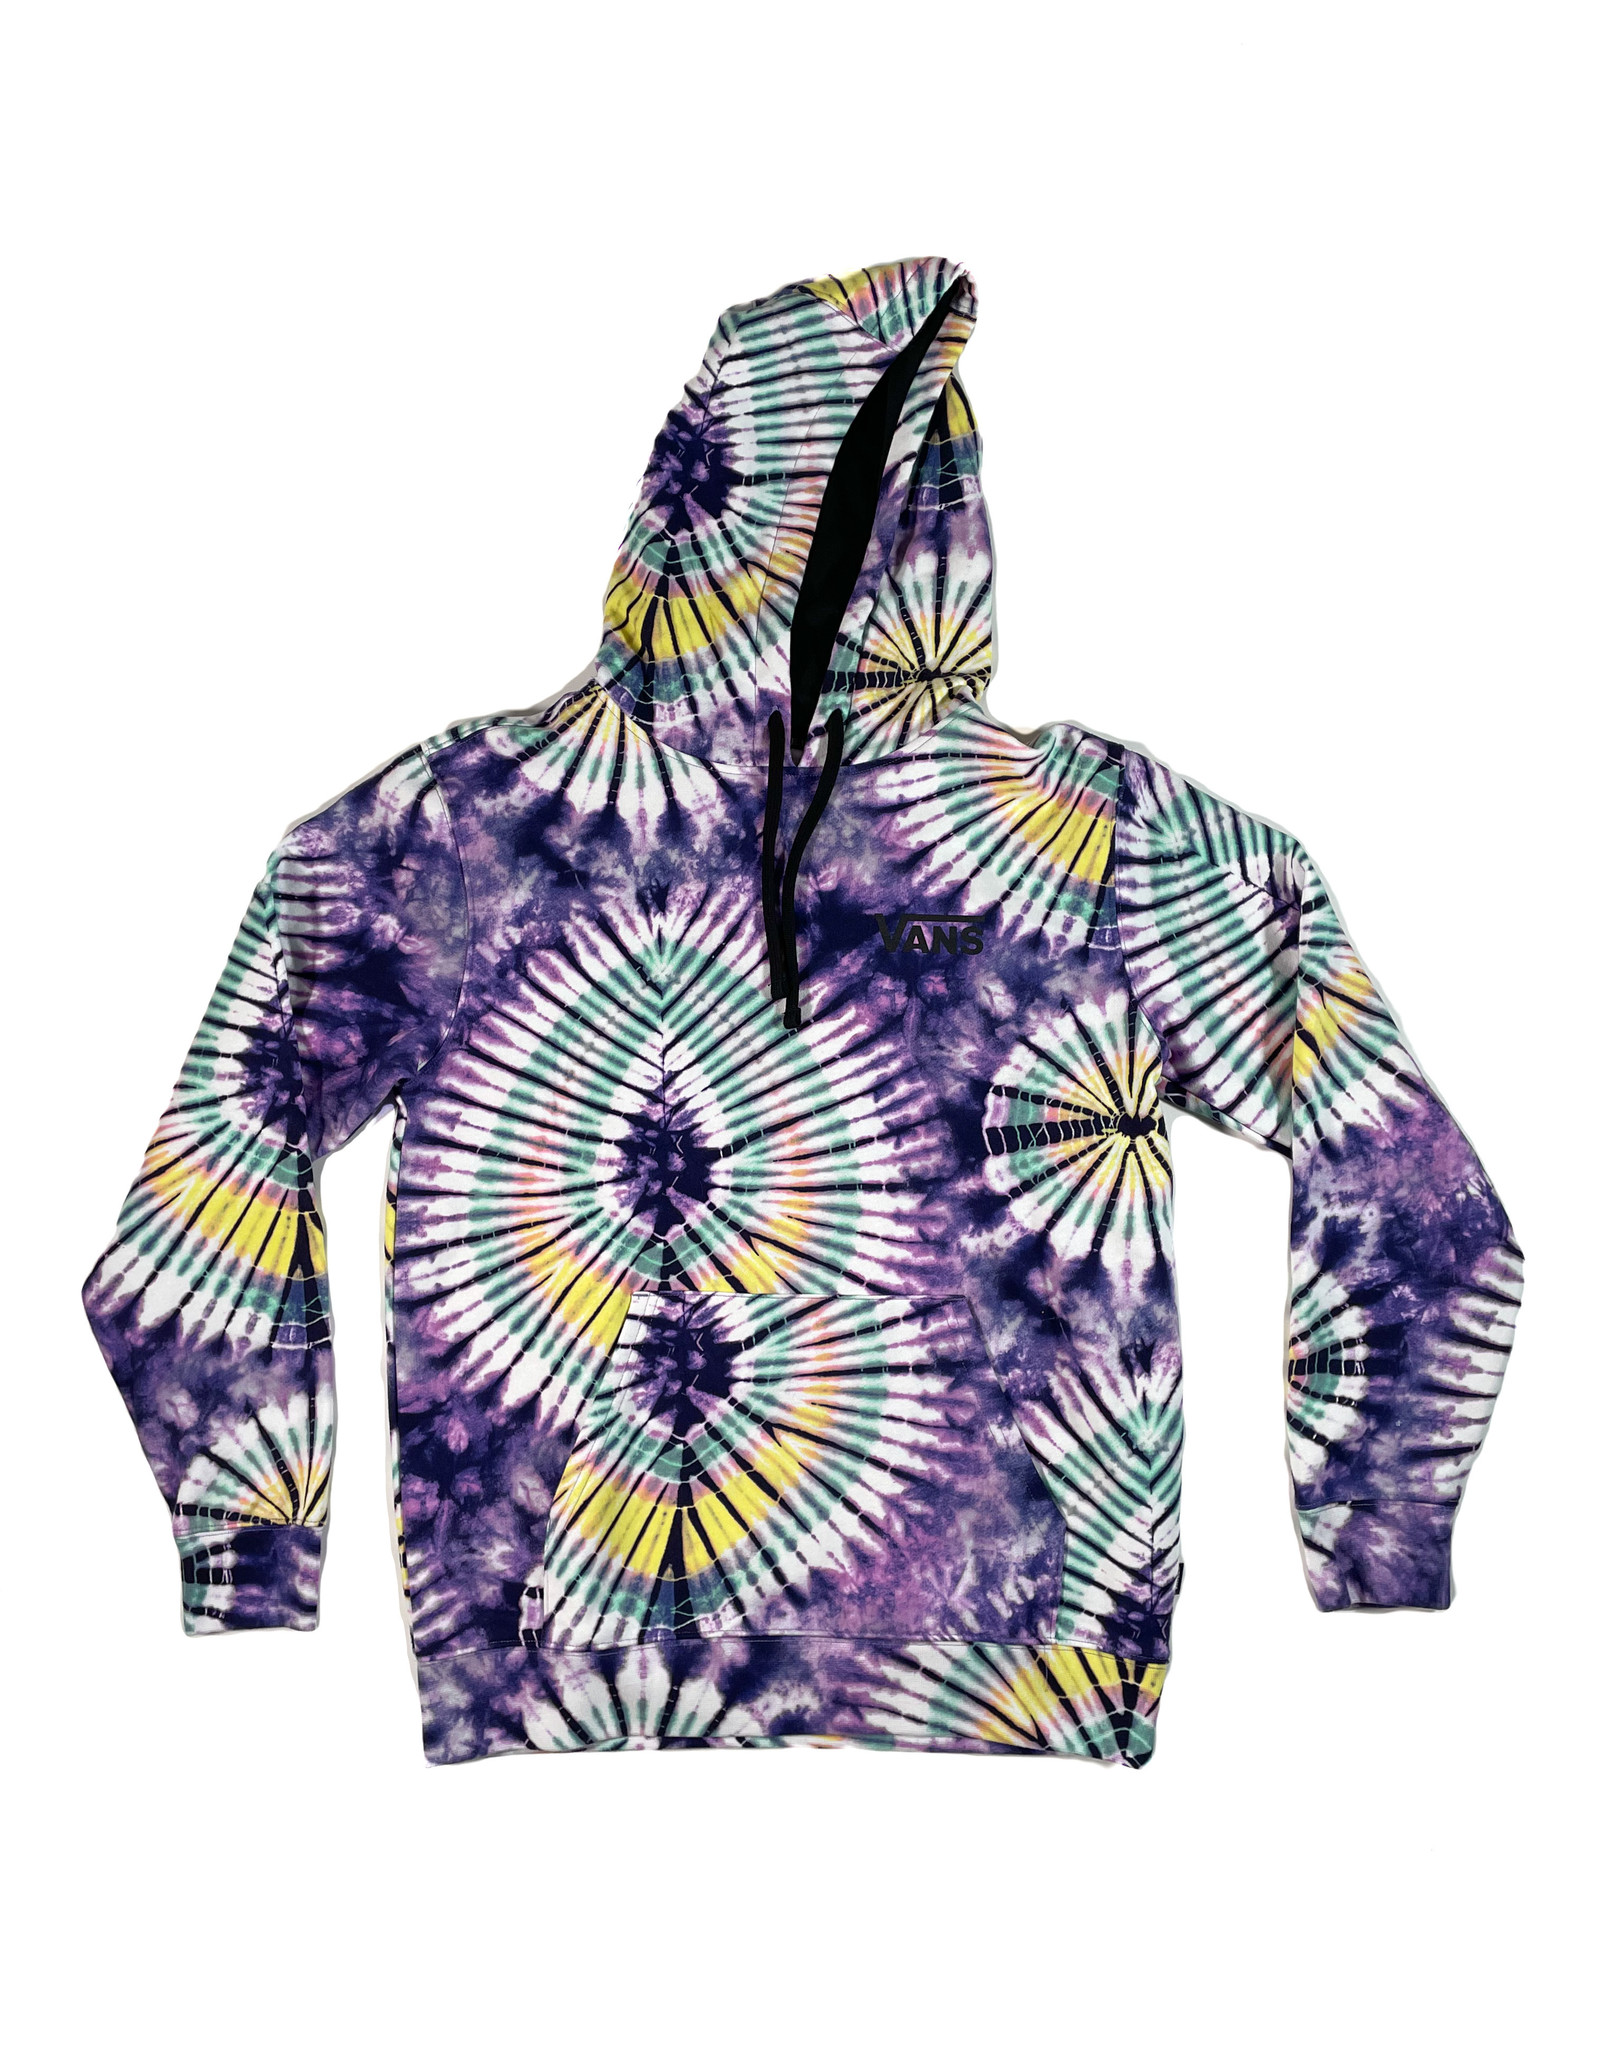 VANS VANS NEW AGE PULLOVER HOODIE - NEW AGE PURPLE